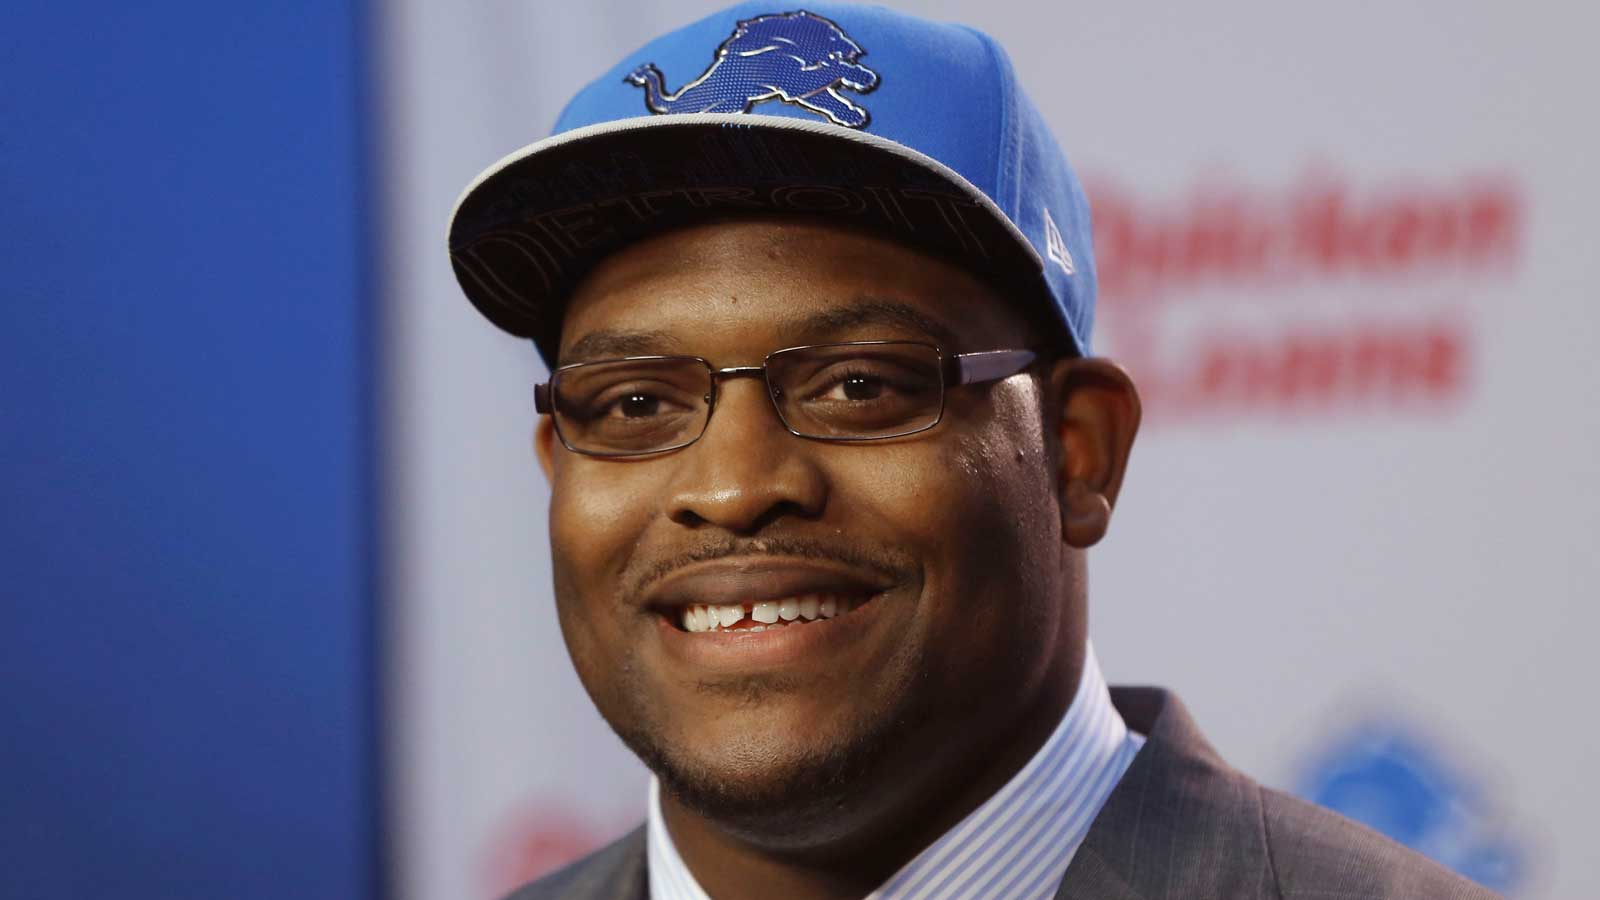 Laken Tomlinson focuses on positives after rough first outing